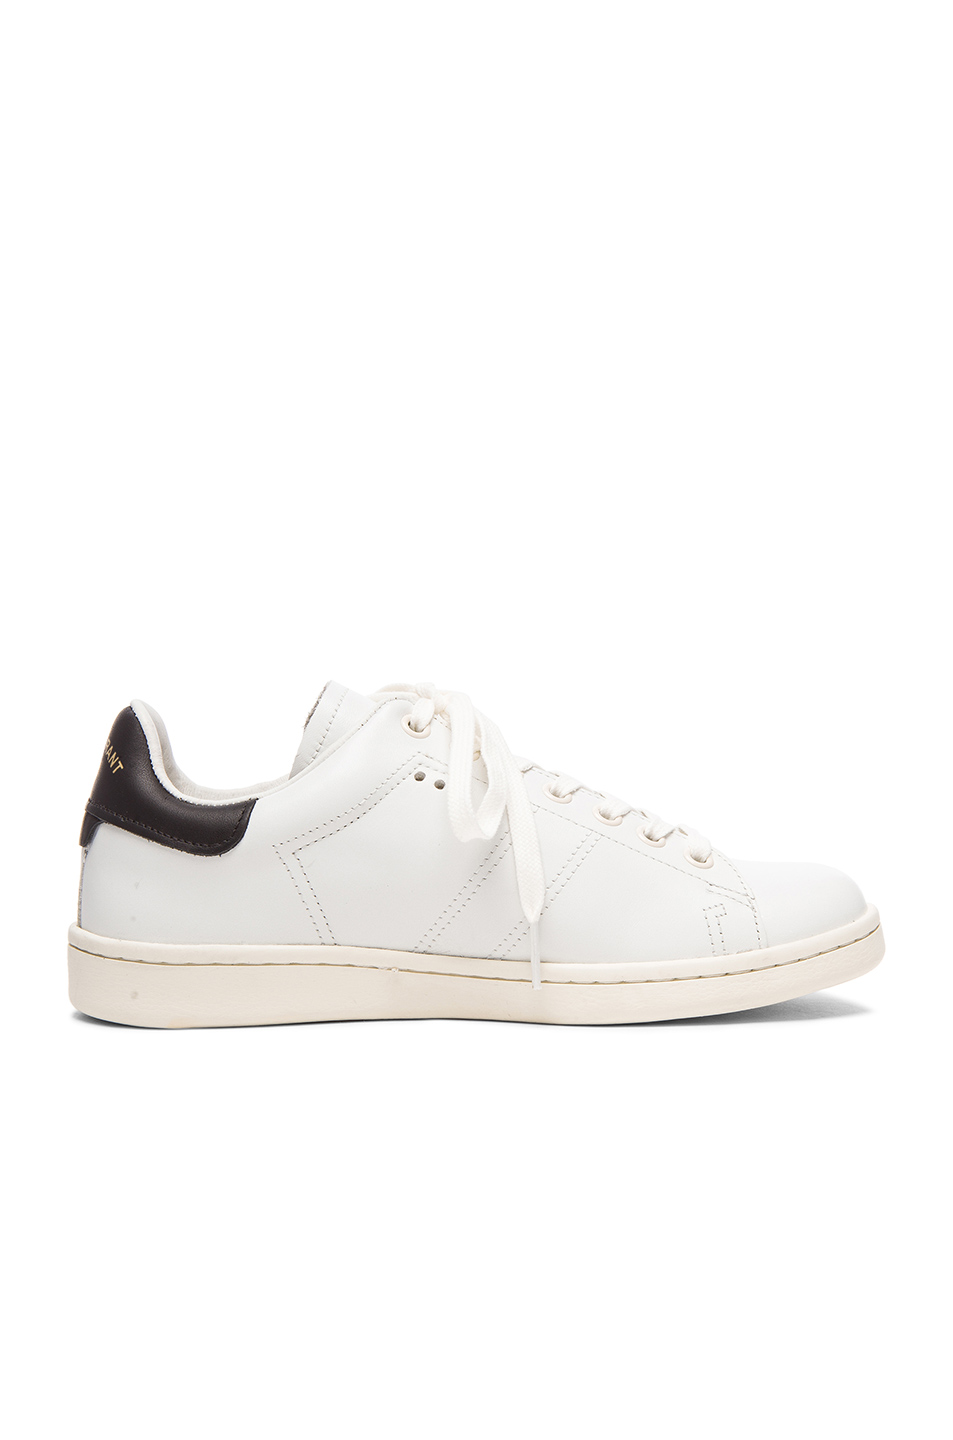 isabel marant etoile bart leather sneakers in white fwrd. Black Bedroom Furniture Sets. Home Design Ideas